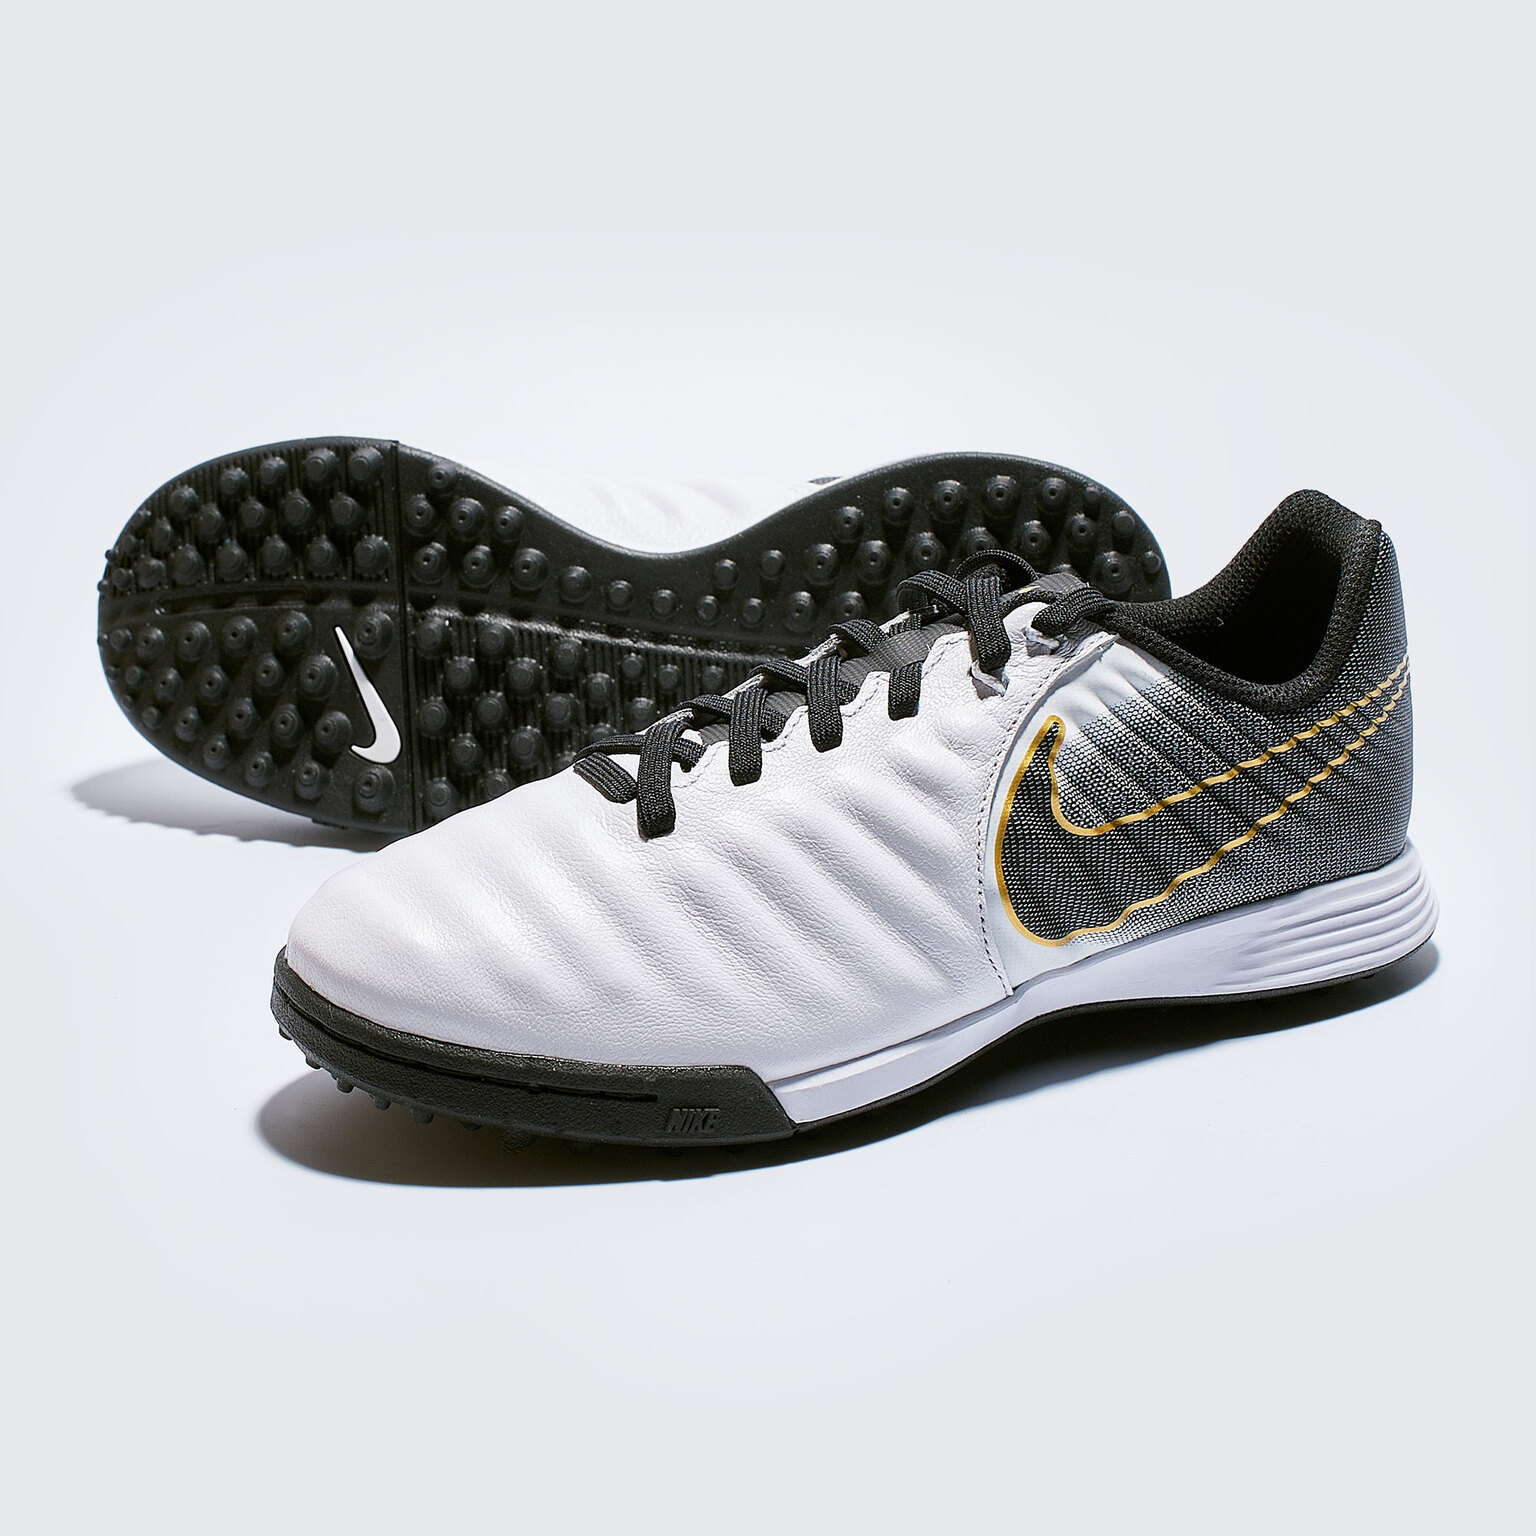 Шиповки детские Nike Legend X Academy TF AH7259-100 бутсы nike шиповки nike jr tiempox legend vi tf 819191 018